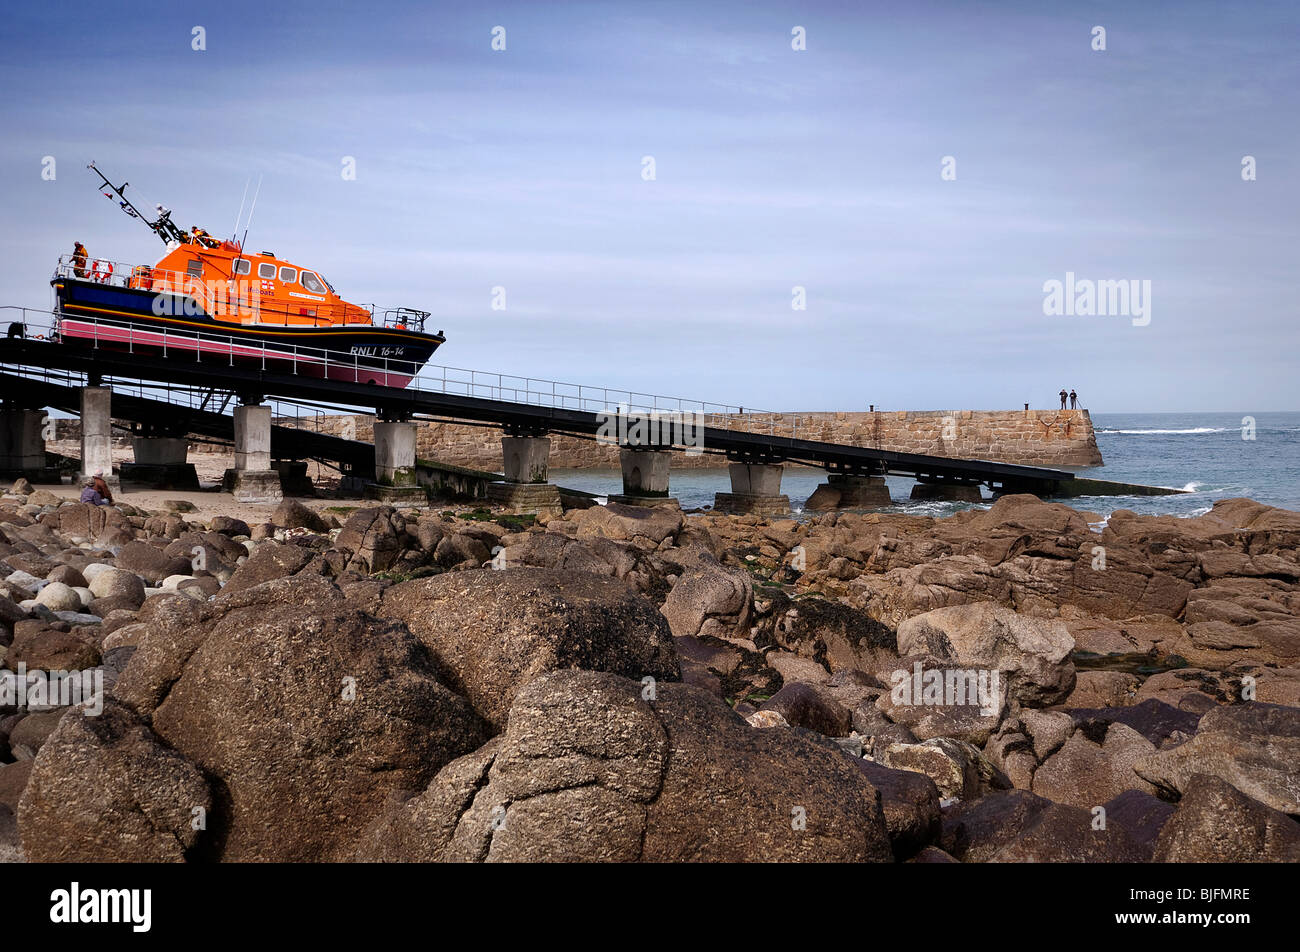 She Shed Cost A Lifeboat Stock Photos Amp A Lifeboat Stock Images Alamy